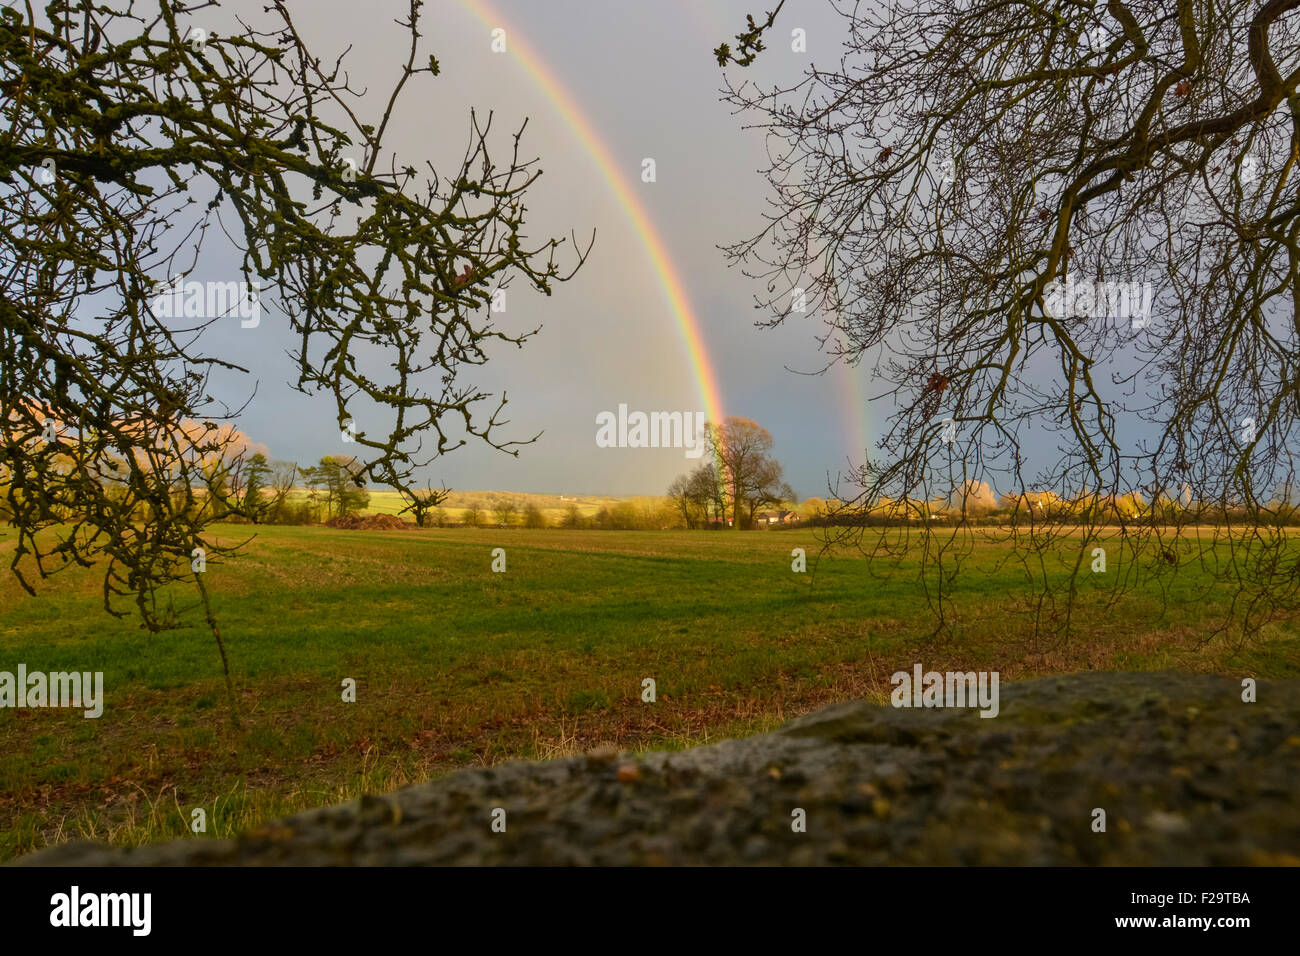 A tree at the end of the rainbow - Stock Image